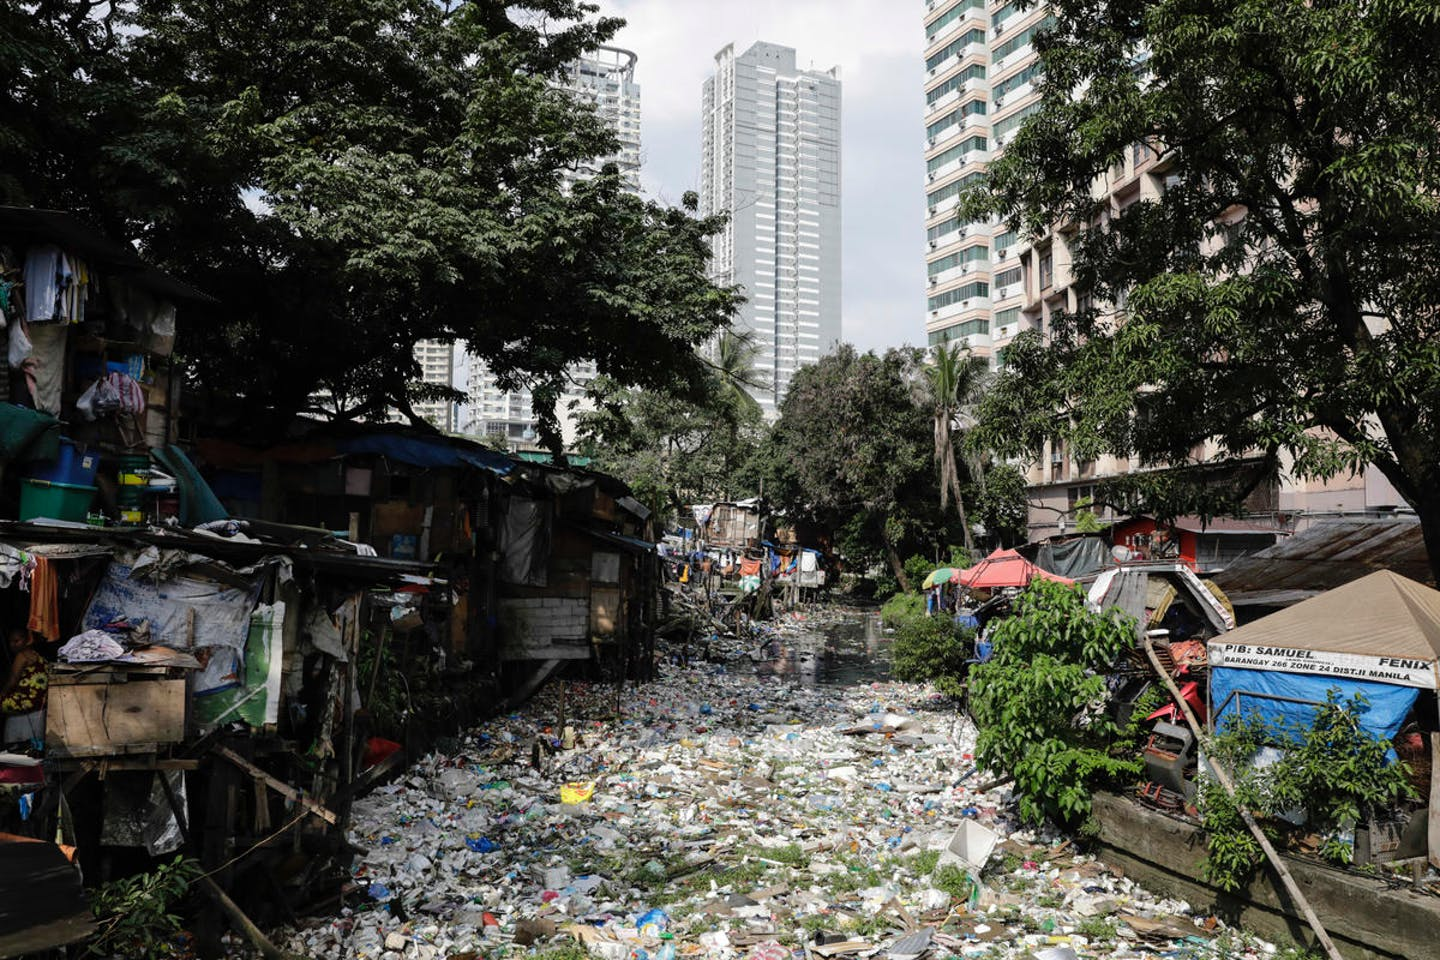 Estero de Magdalena, a marine channel running through the city of Manila. Typhoon Ompong has revealed the scale of plastic pollution in the Philippine capital. Image: Joshua Paul/Greenpeace